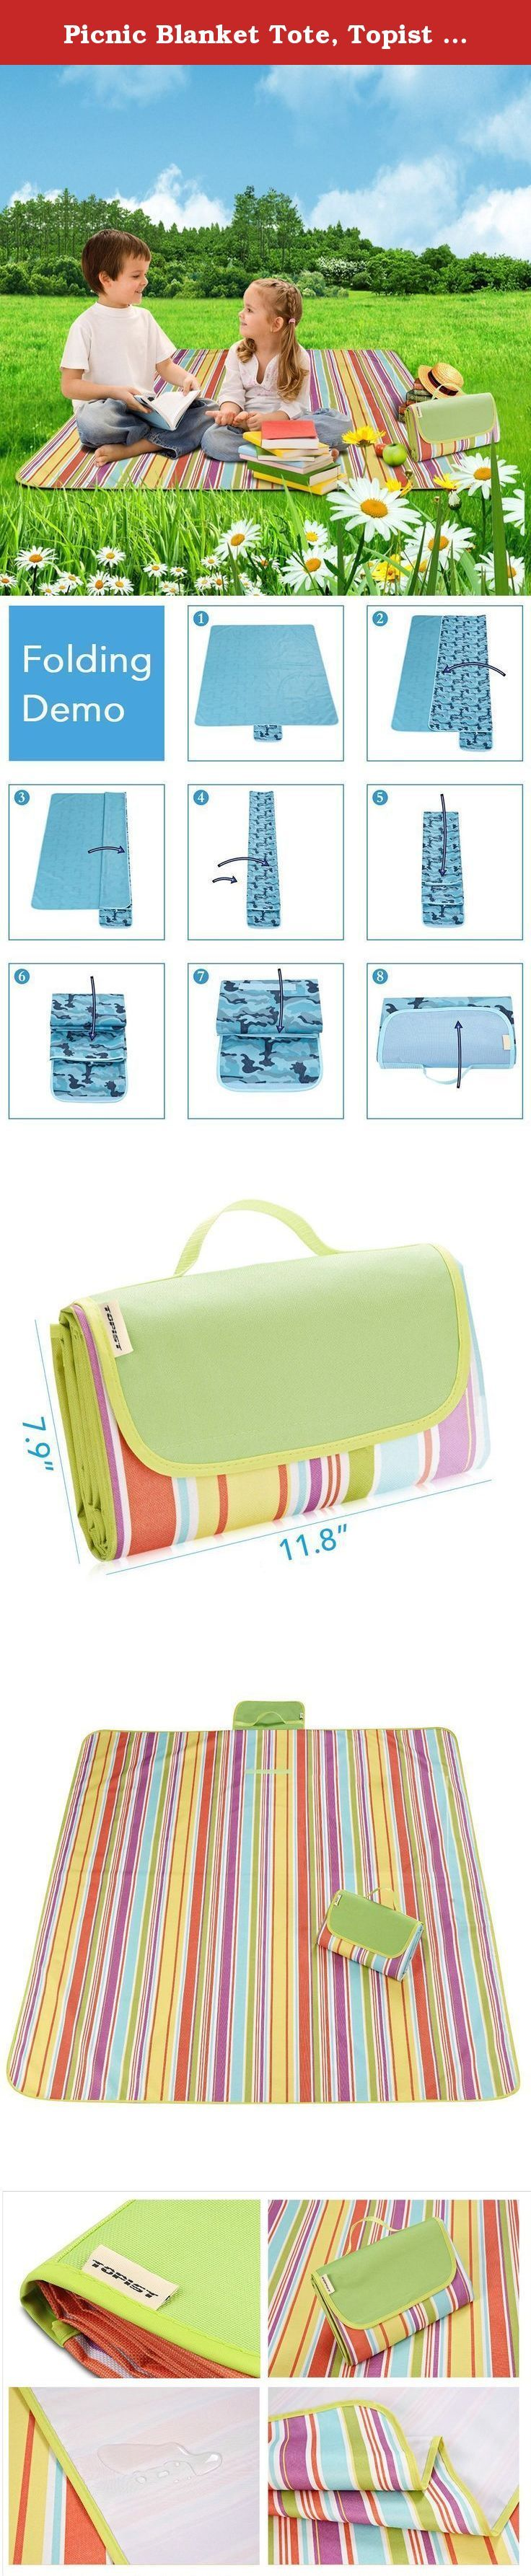 Picnic Blanket Tote, Topist Outdoor Waterproof Picnic Mat Handy Tote Foldable Moisture-Proof Mat Sandproof Backing Blanket for Picnic, Beach, Traveling, Camping, Hiking, Baby Crawling (Rainbow Stripe). The Topist mat is fashionable and unique style, small volume and light quality with no much space occupied, and it is easy to store, which could make outdoor picnic easier. The Picnic mat carry handle is waterproof and moisture proof, easy to fold, score and carry, no breaks after being…